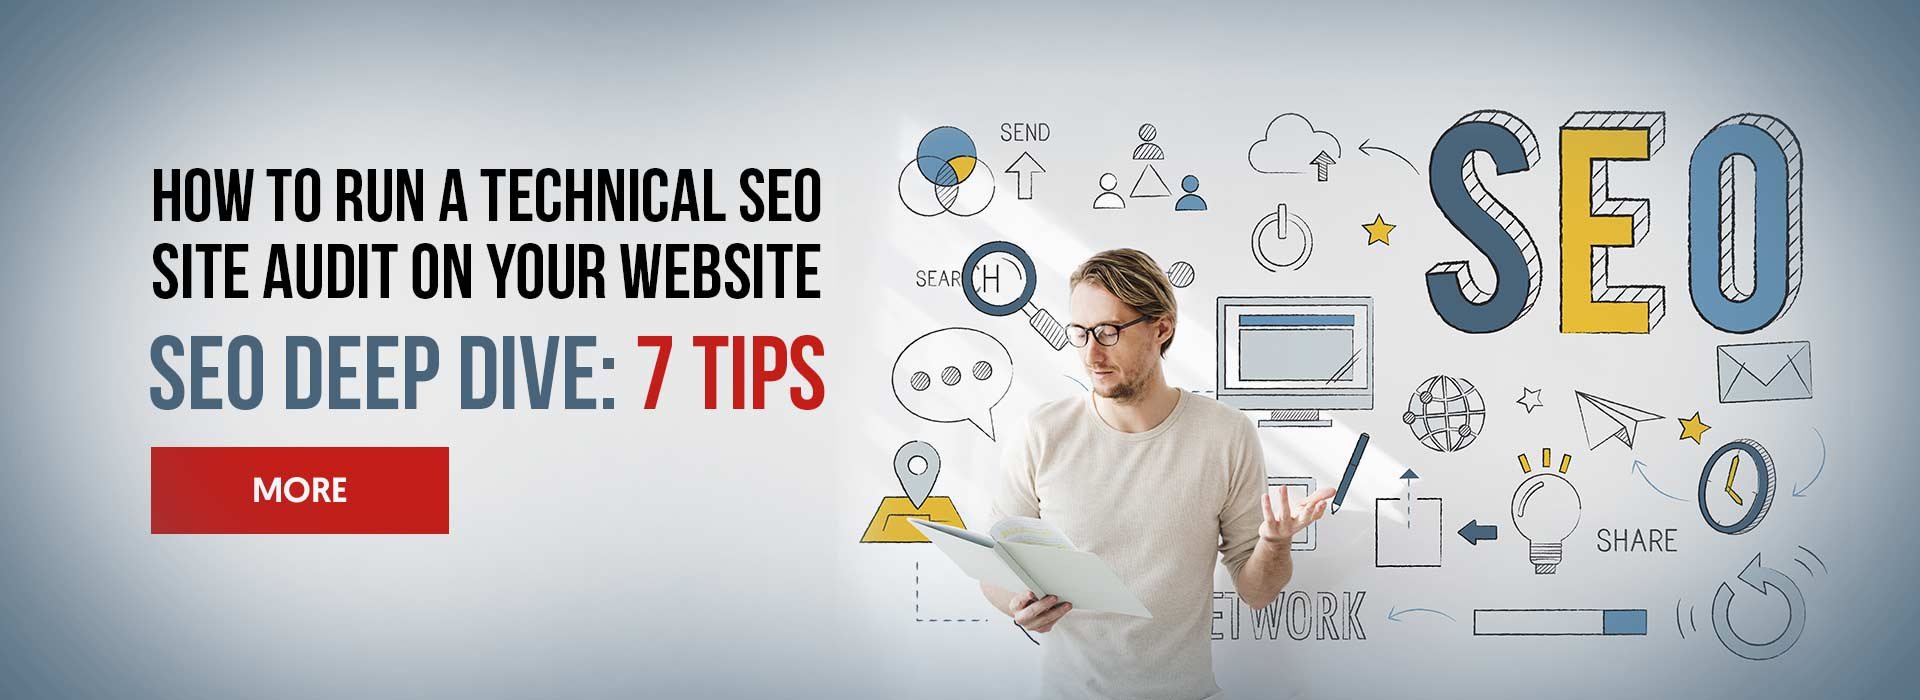 How to run a Technical SEO Site Audit on your website